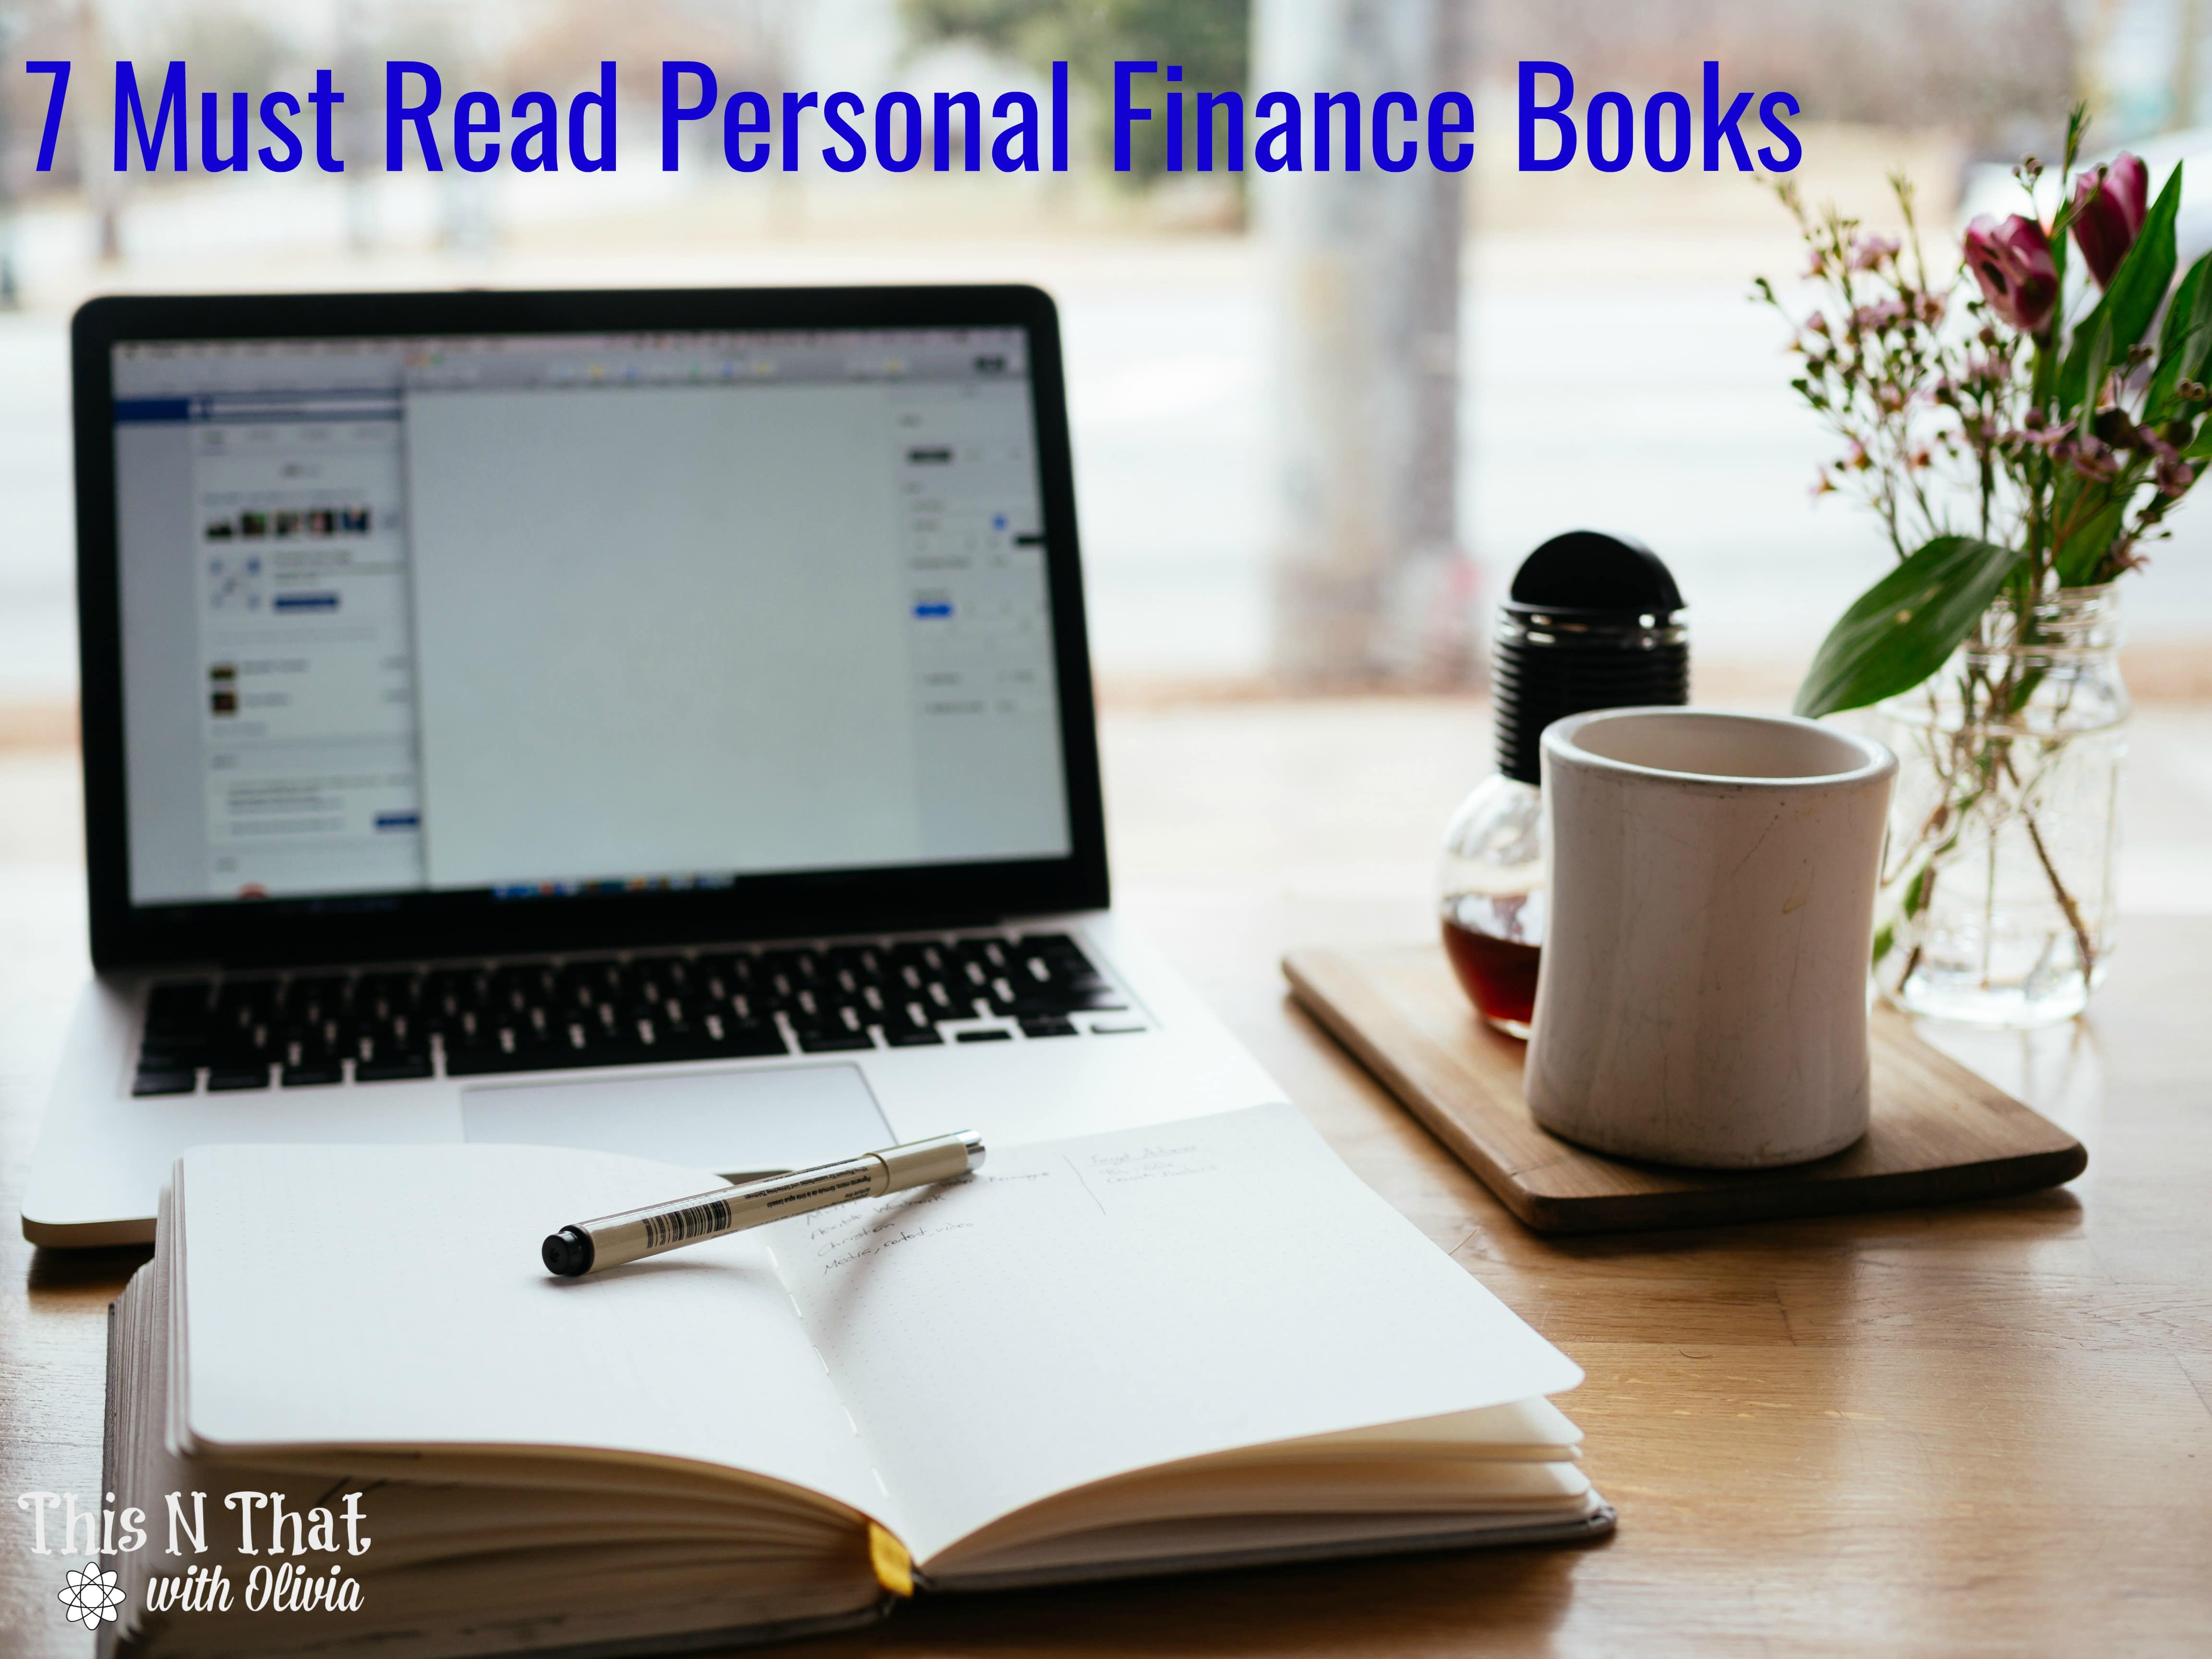 7 Must Read Personal Finance Books